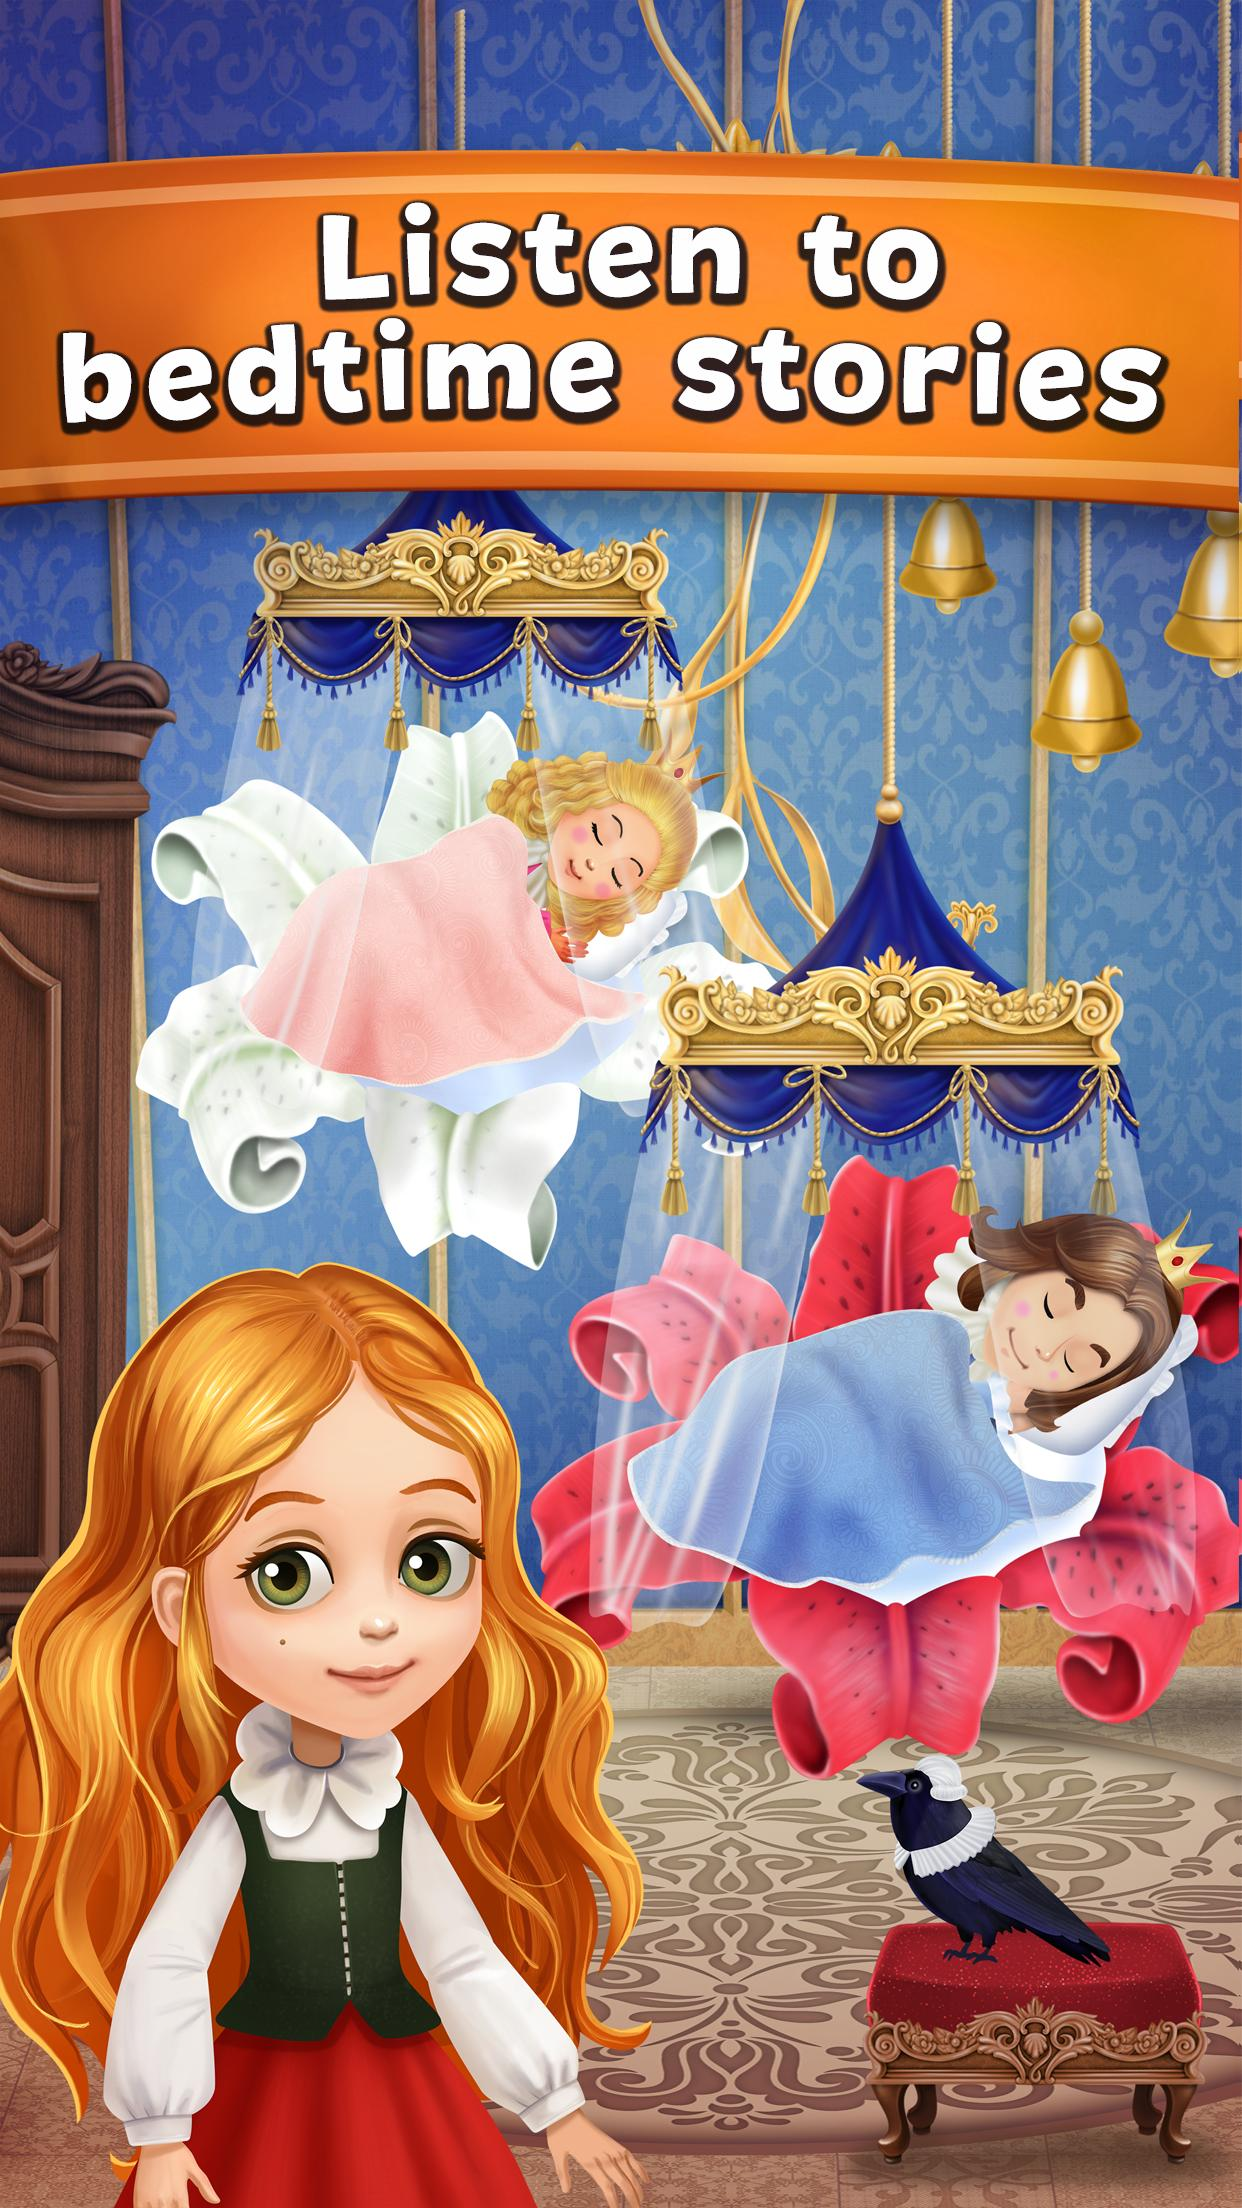 Fairy Tales Children's Books, Stories and Games 2.7.0 Screenshot 5